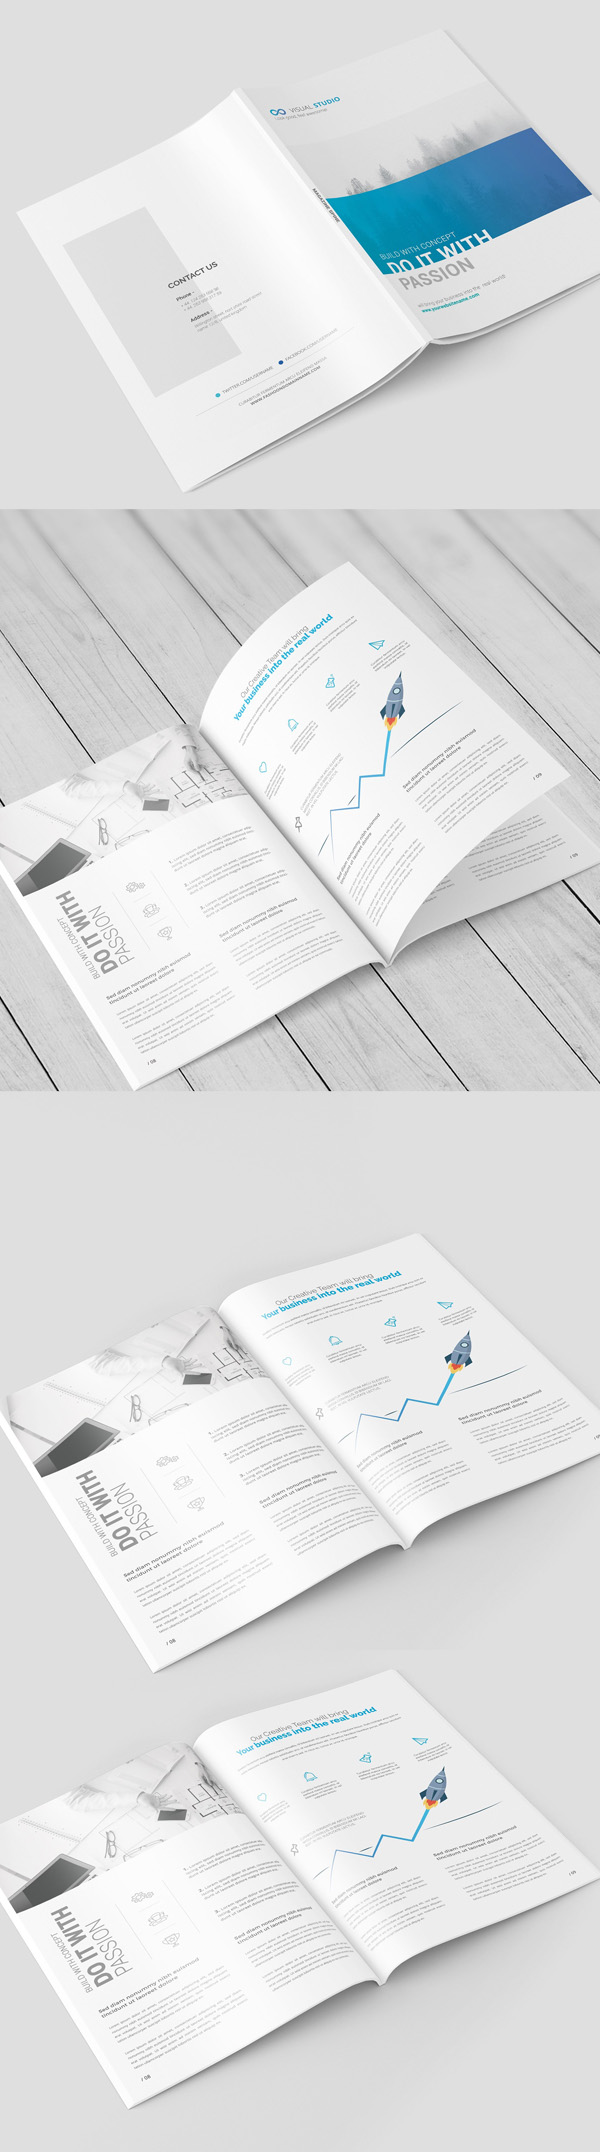 A4 Magazine / Brochure Mock-Up